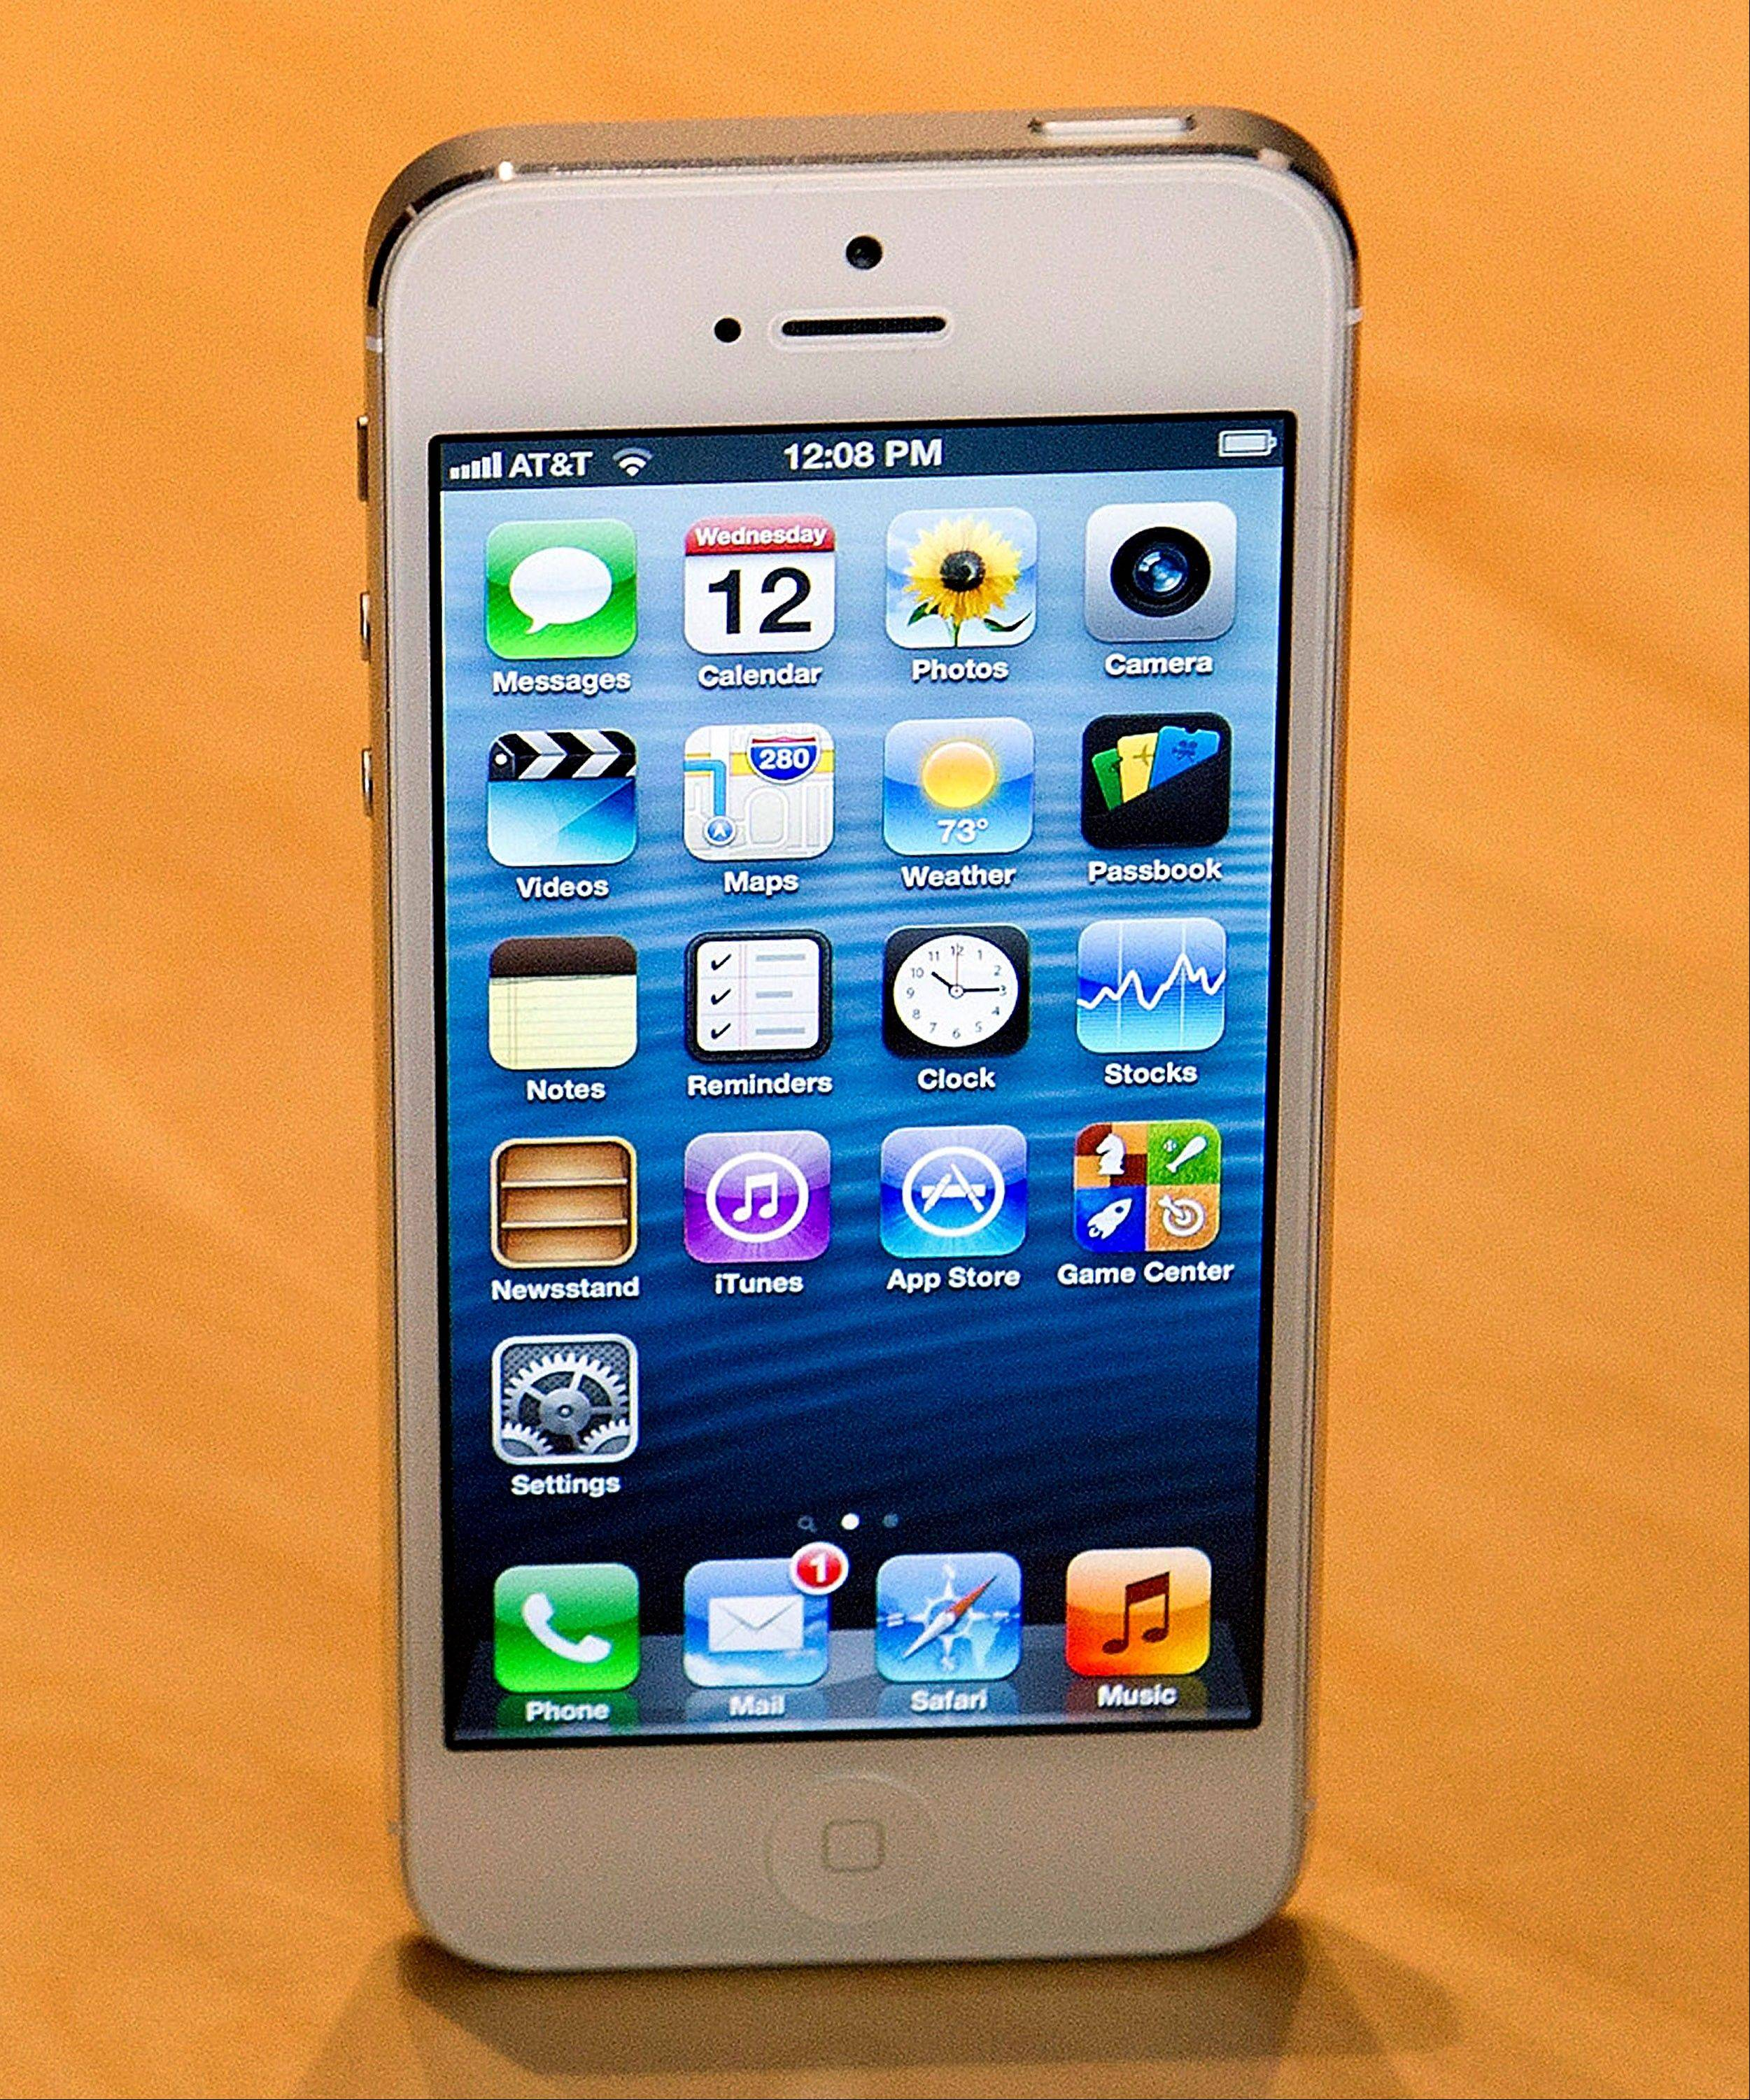 The new Apple Inc. iPhone 5